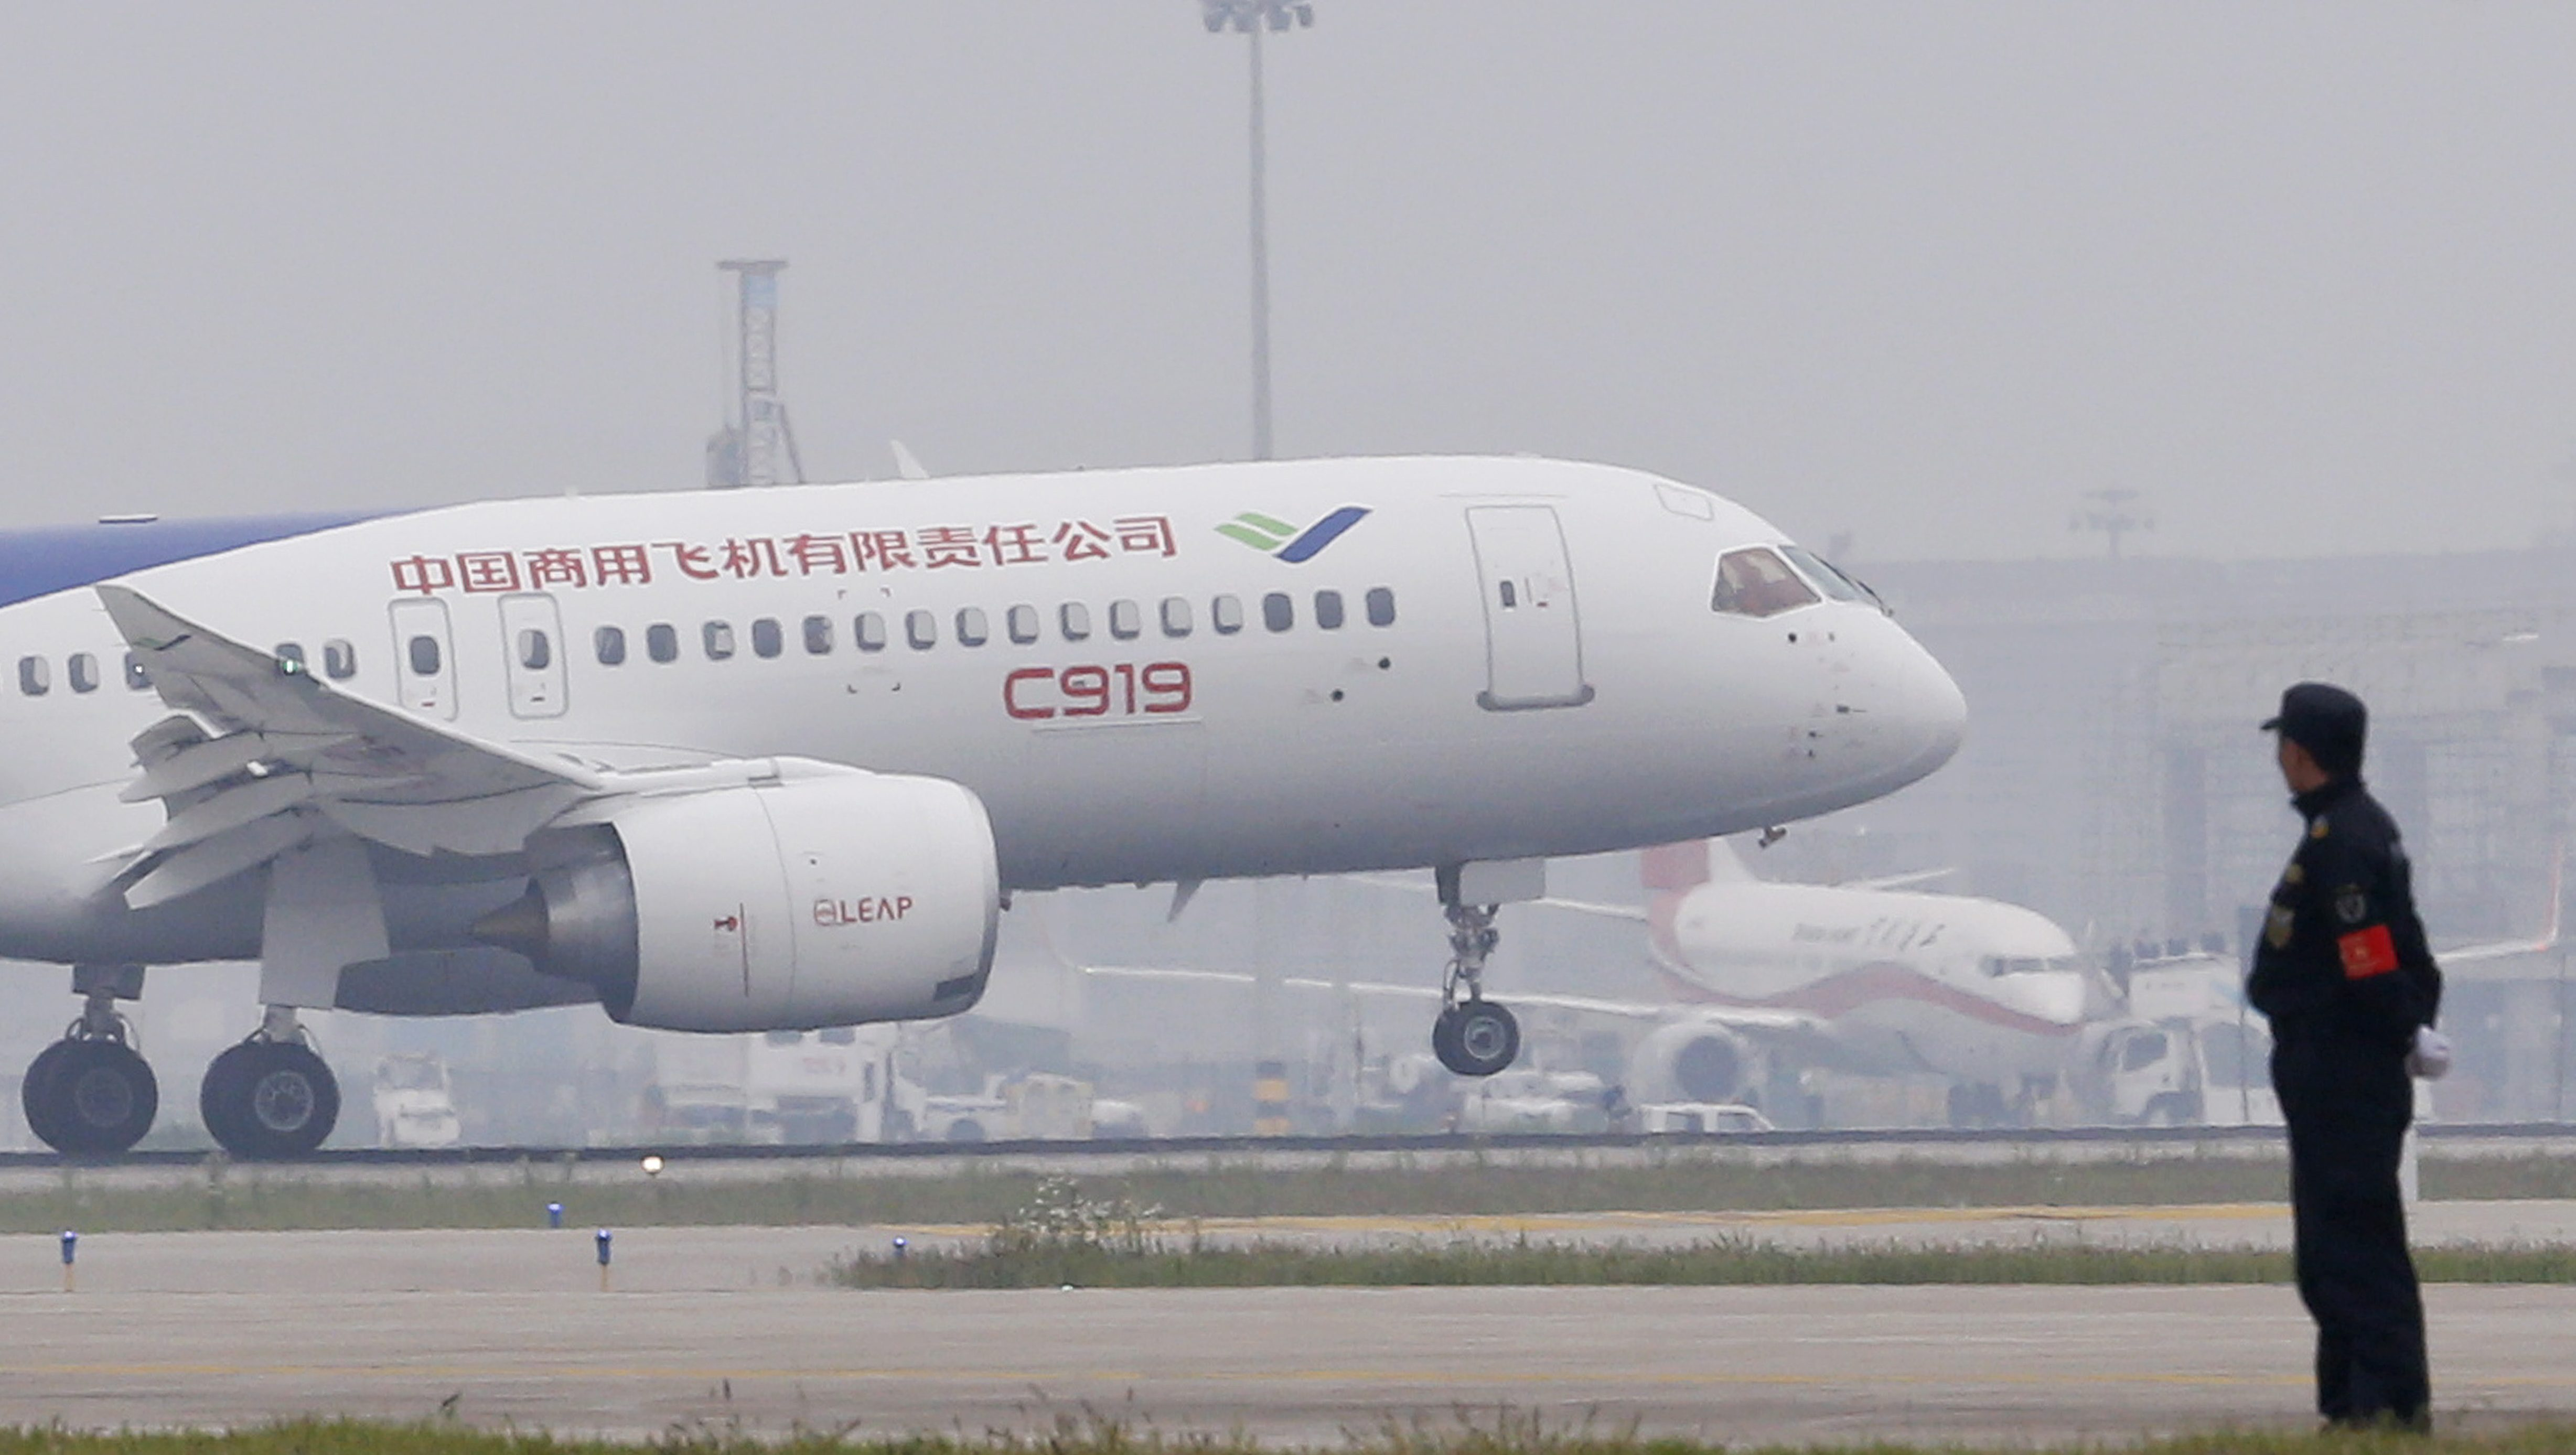 China's home-grown C919 passenger jet lands on its maiden flight at the Pudong International Airport in Shanghai, Friday, May 5, 2017. The first large Chinese-made passenger jetliner C919 took off Friday on its maiden flight, a symbolic milestone in China's long-term goal to break into the Western-dominated aircraft market. (Aly Song/Pool Photo via AP)